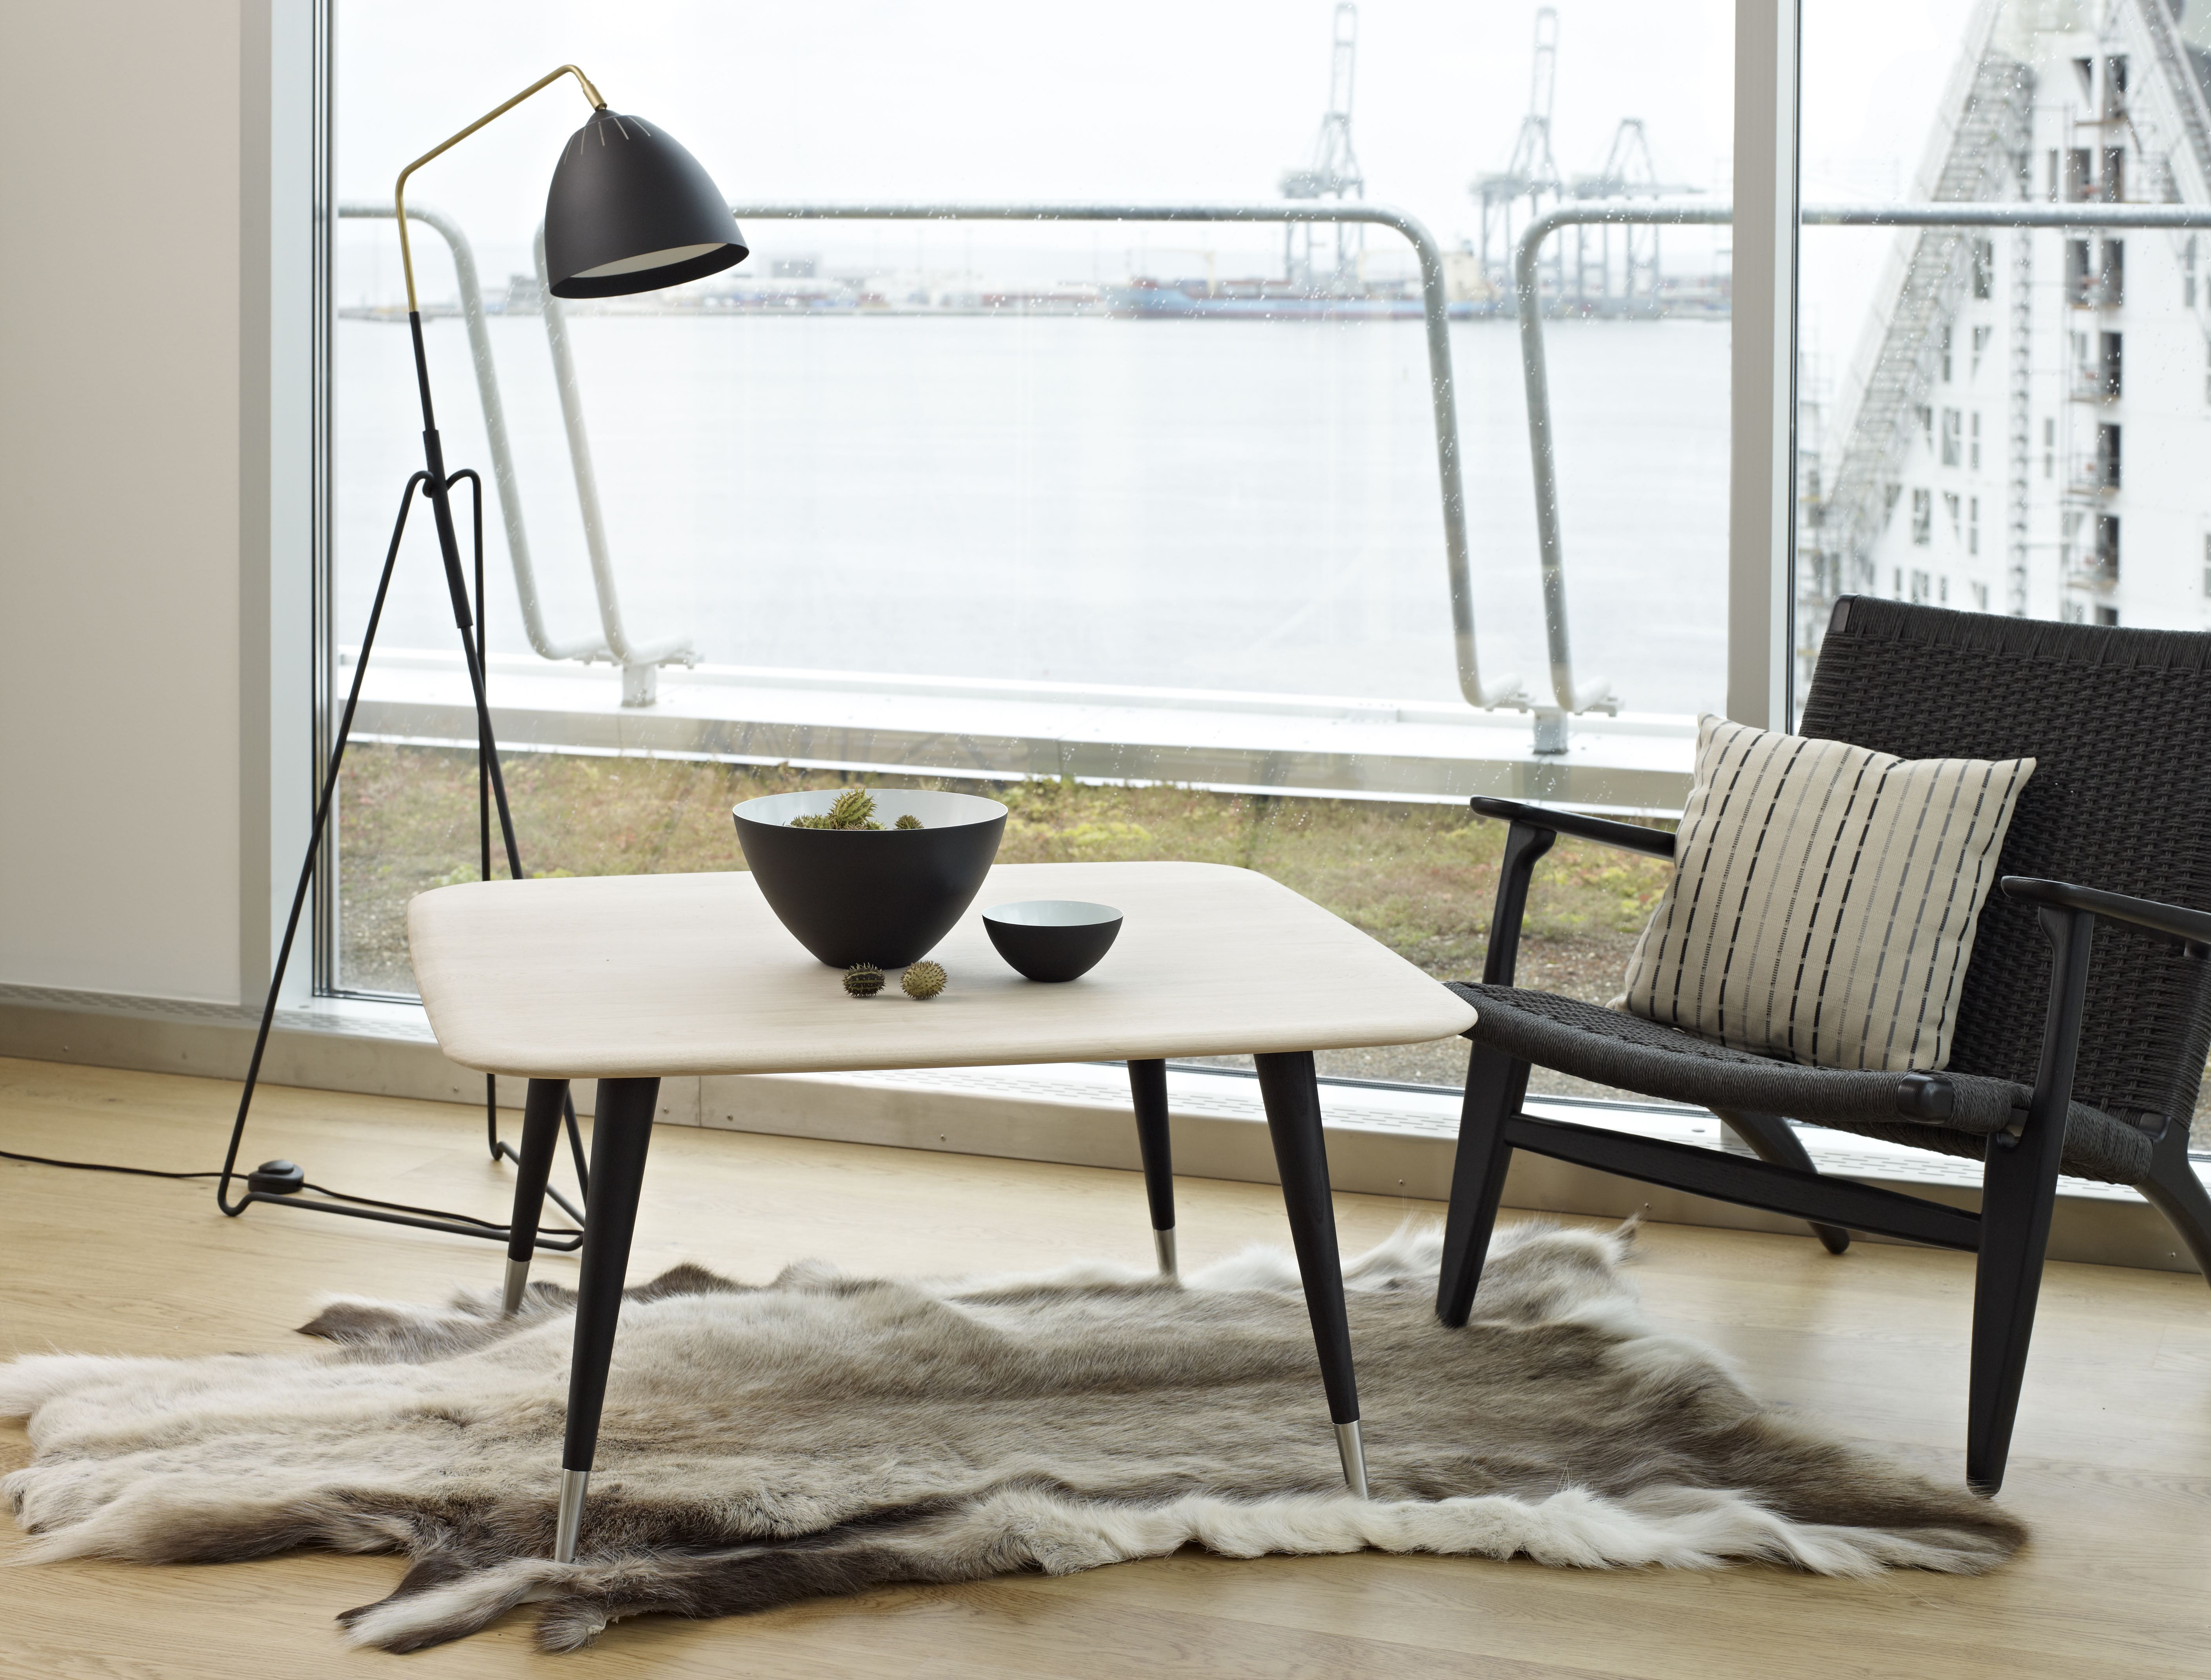 Coffee table, from £1,012 ©Wharfside